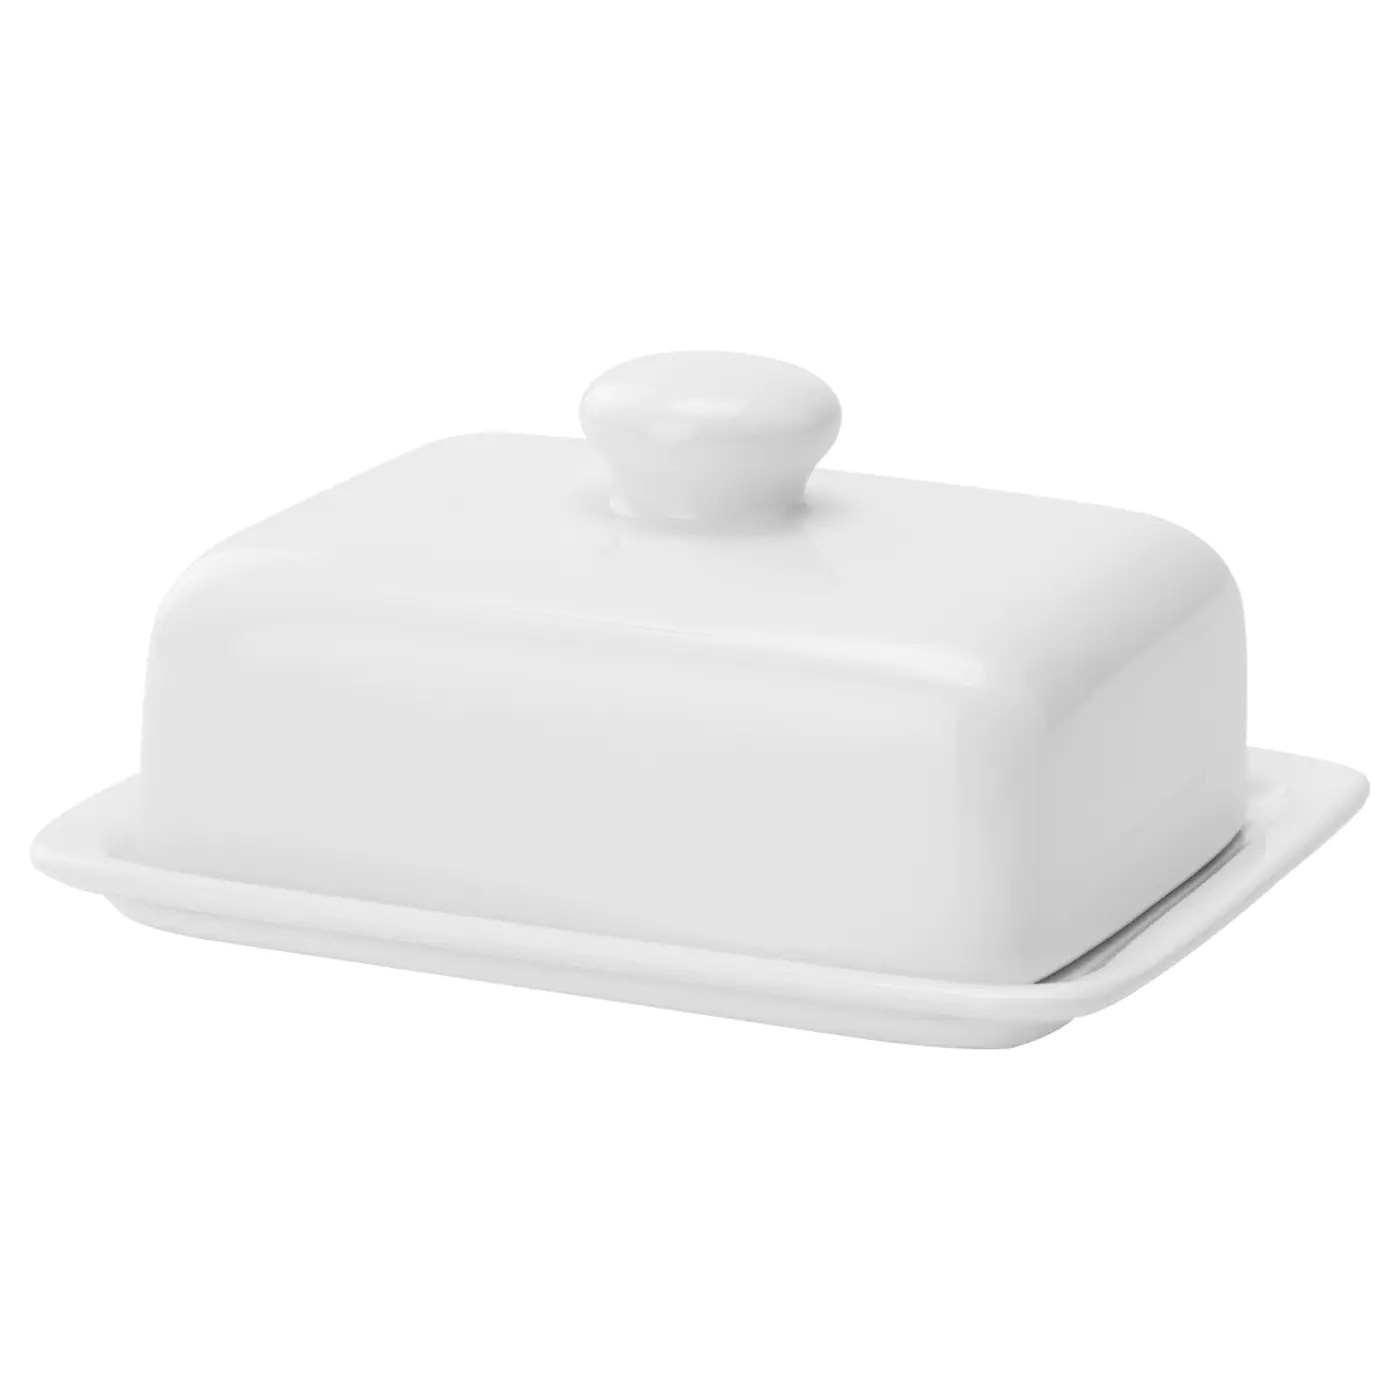 Ikea Assembly Instructions Vardagen Gravy Boat With Saucer Off-white 32 Cl - Ikea